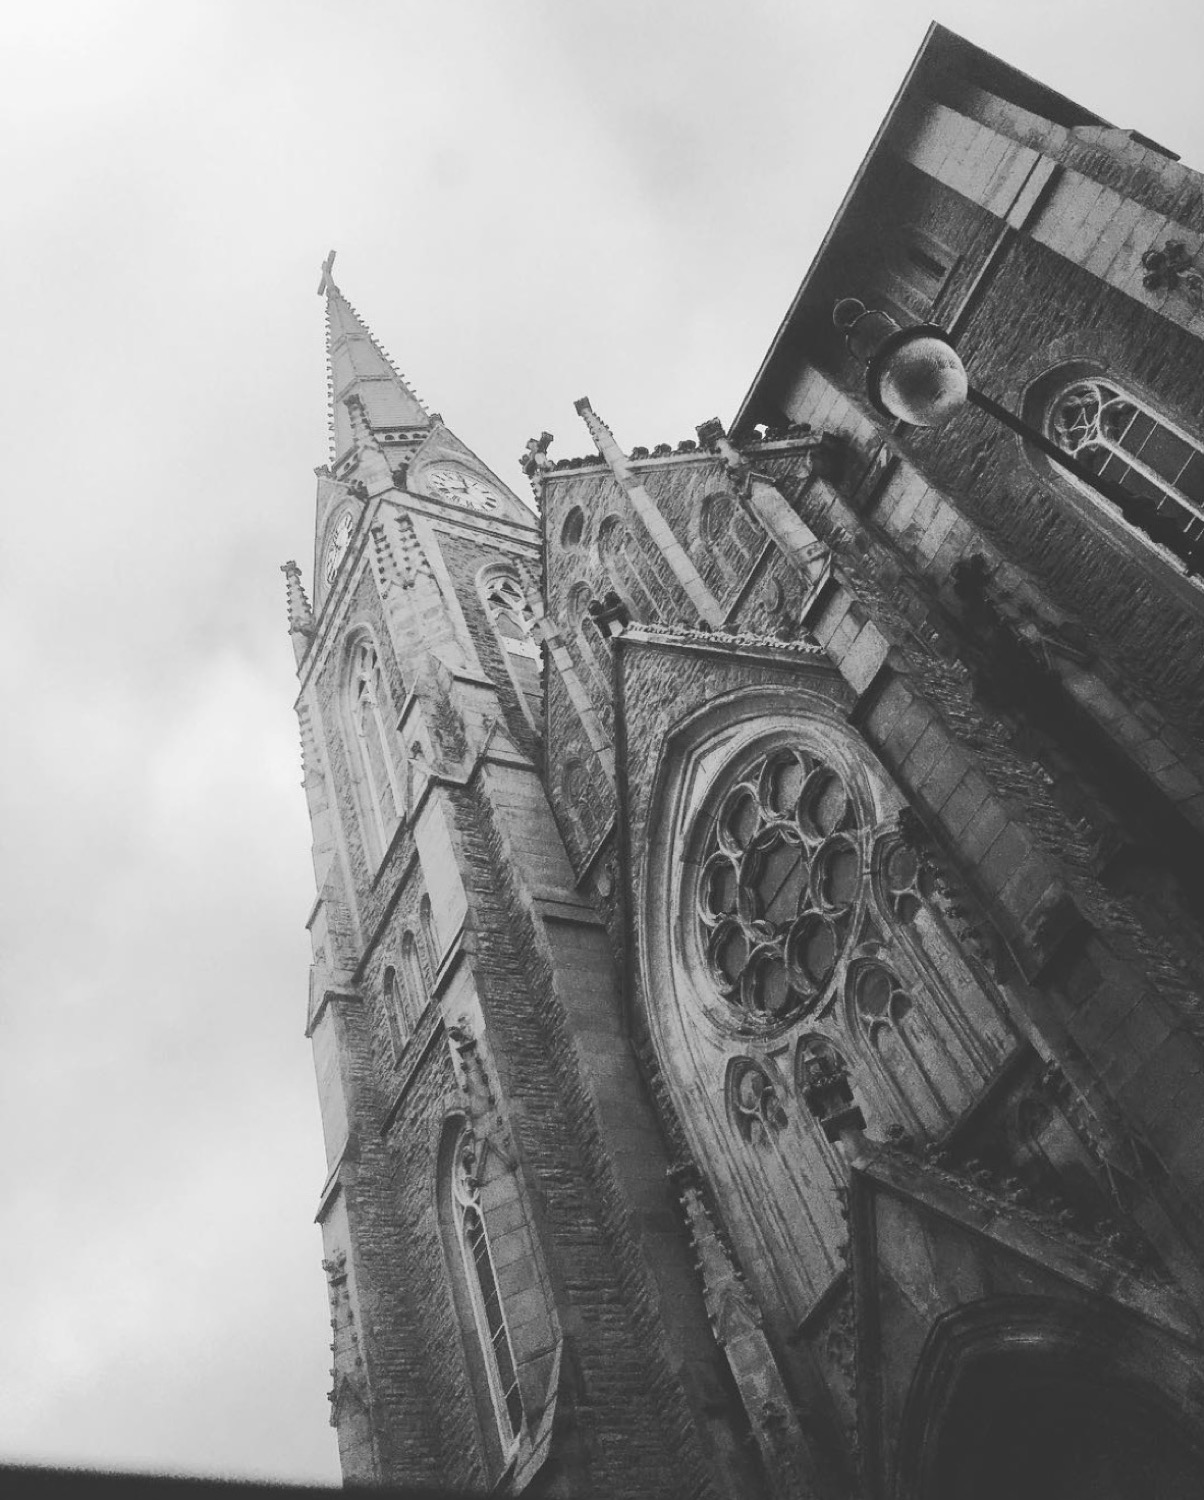 Image: IG user @babyshots_dpt / Post: Moody St. Francis DeSales from the other day. // Published: 12.17.16